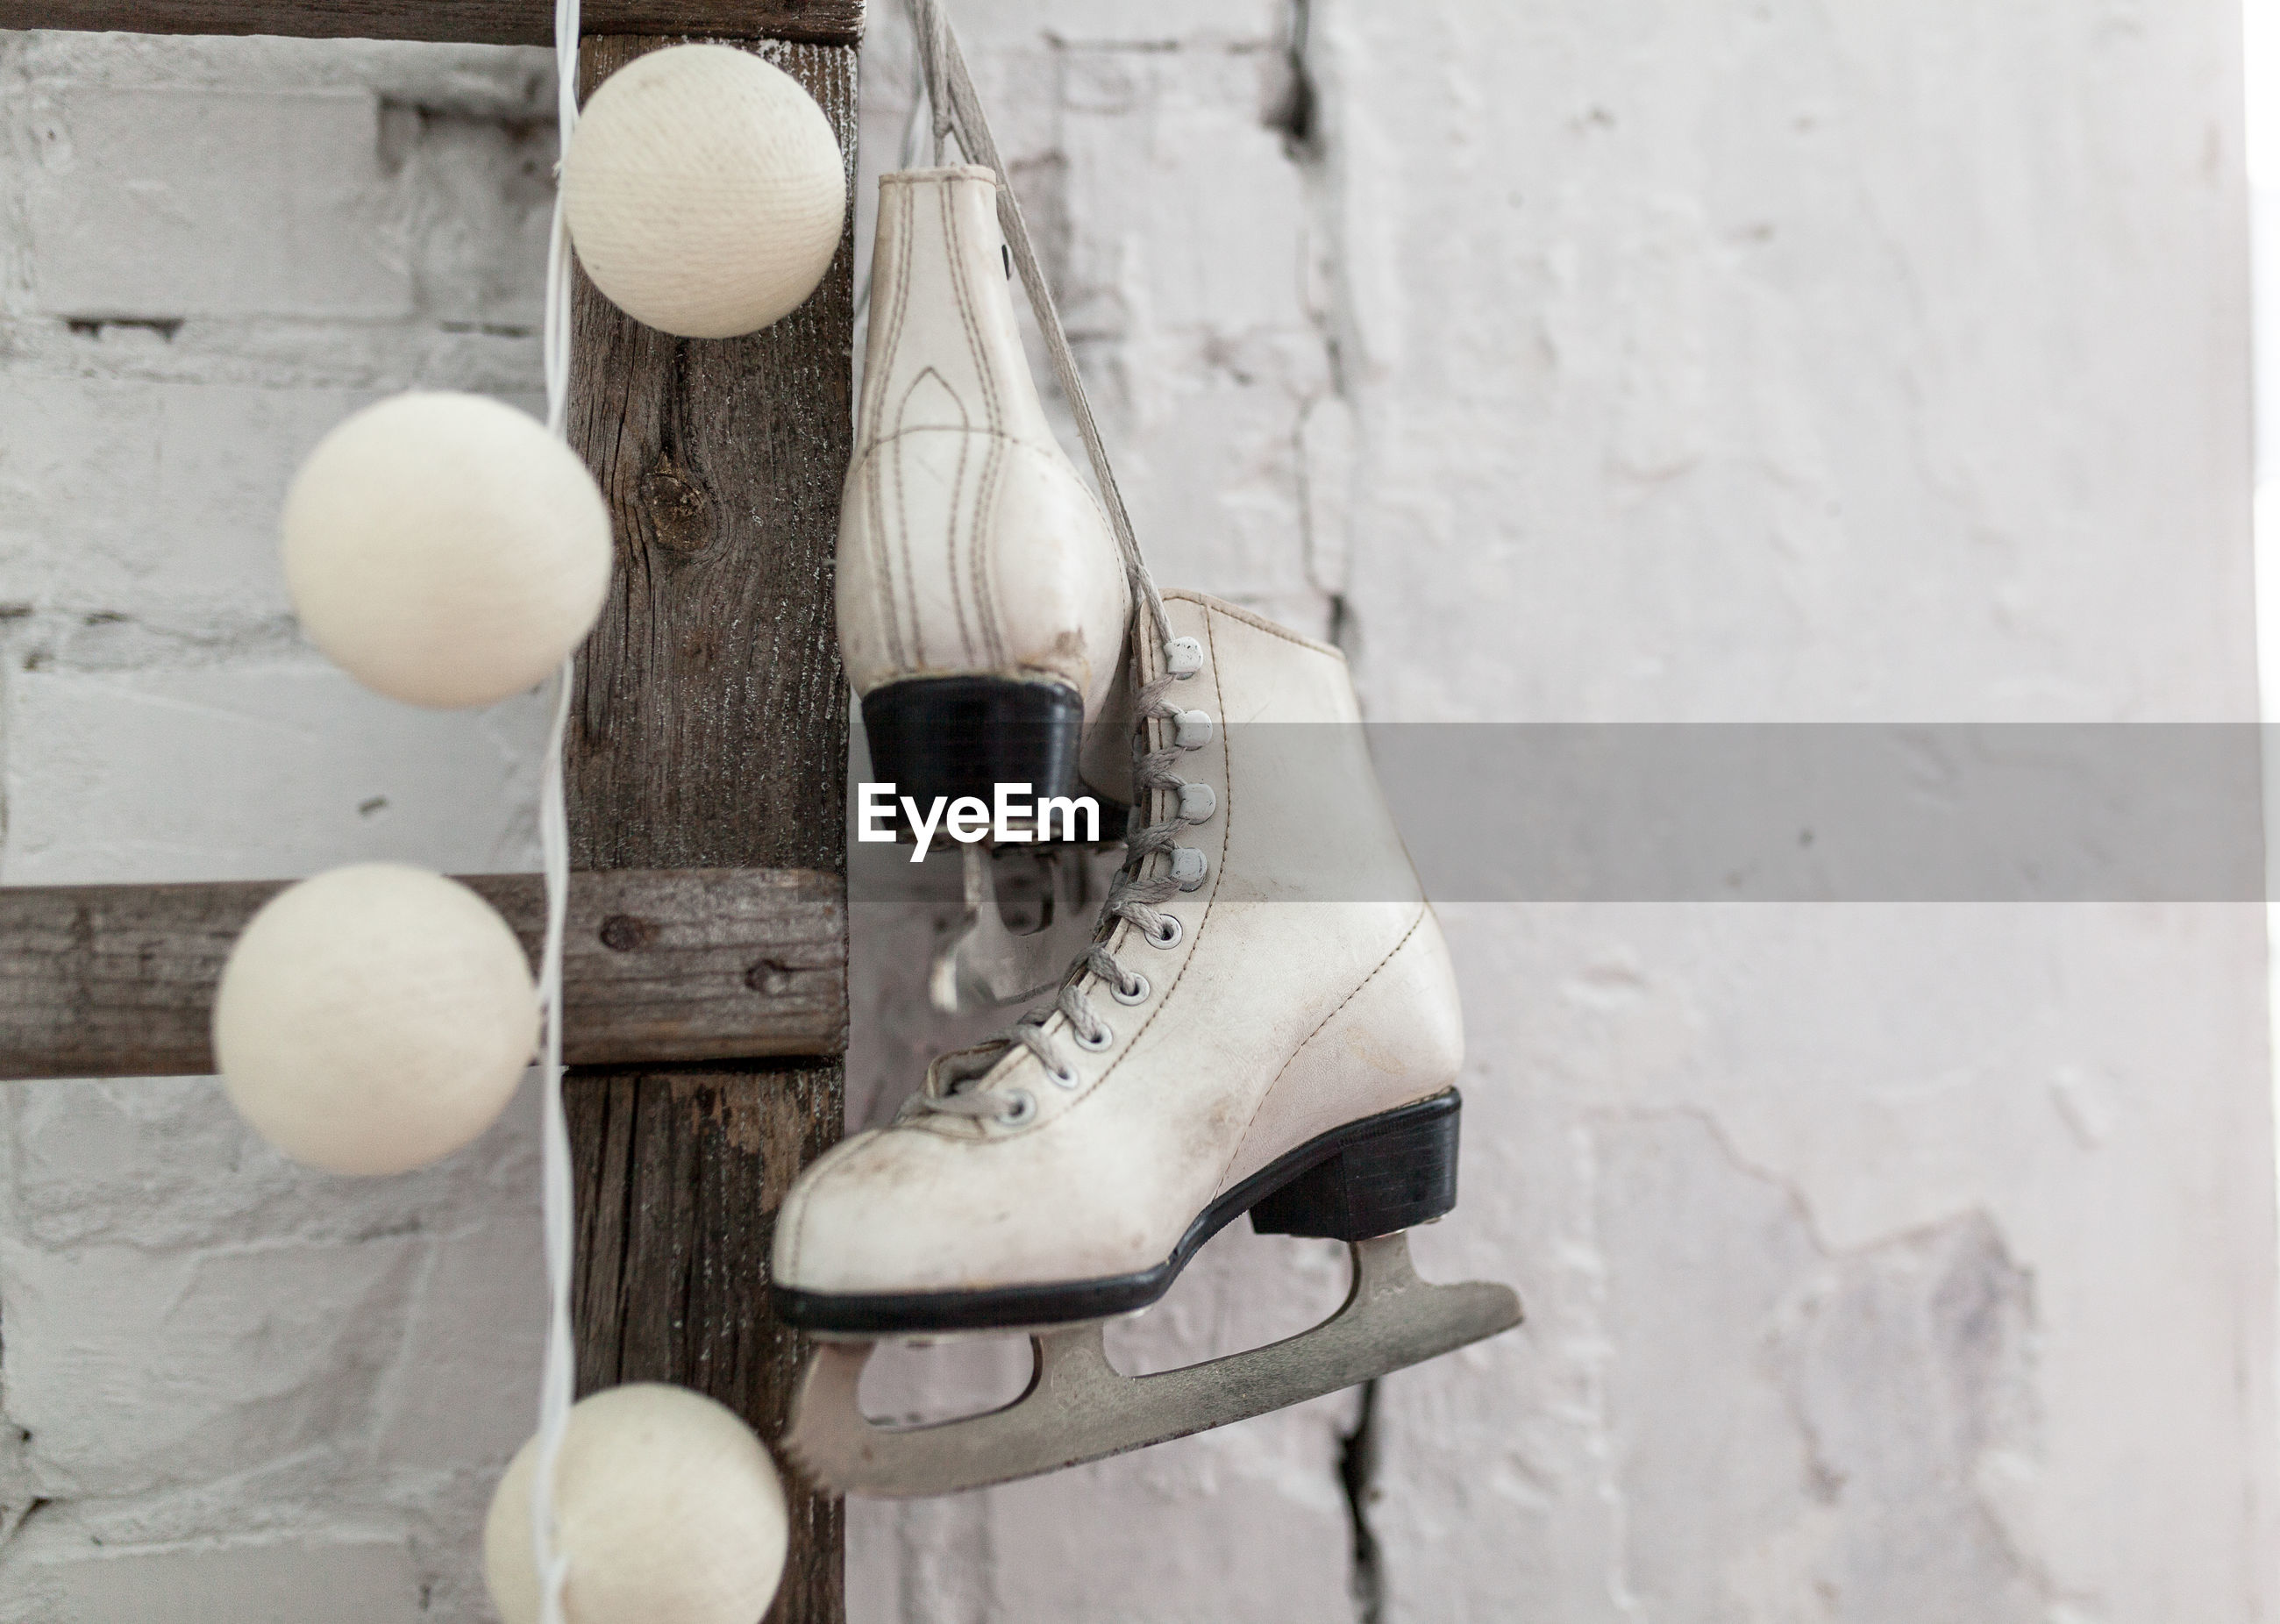 Close-up of ice skates hanging on ladder against wall